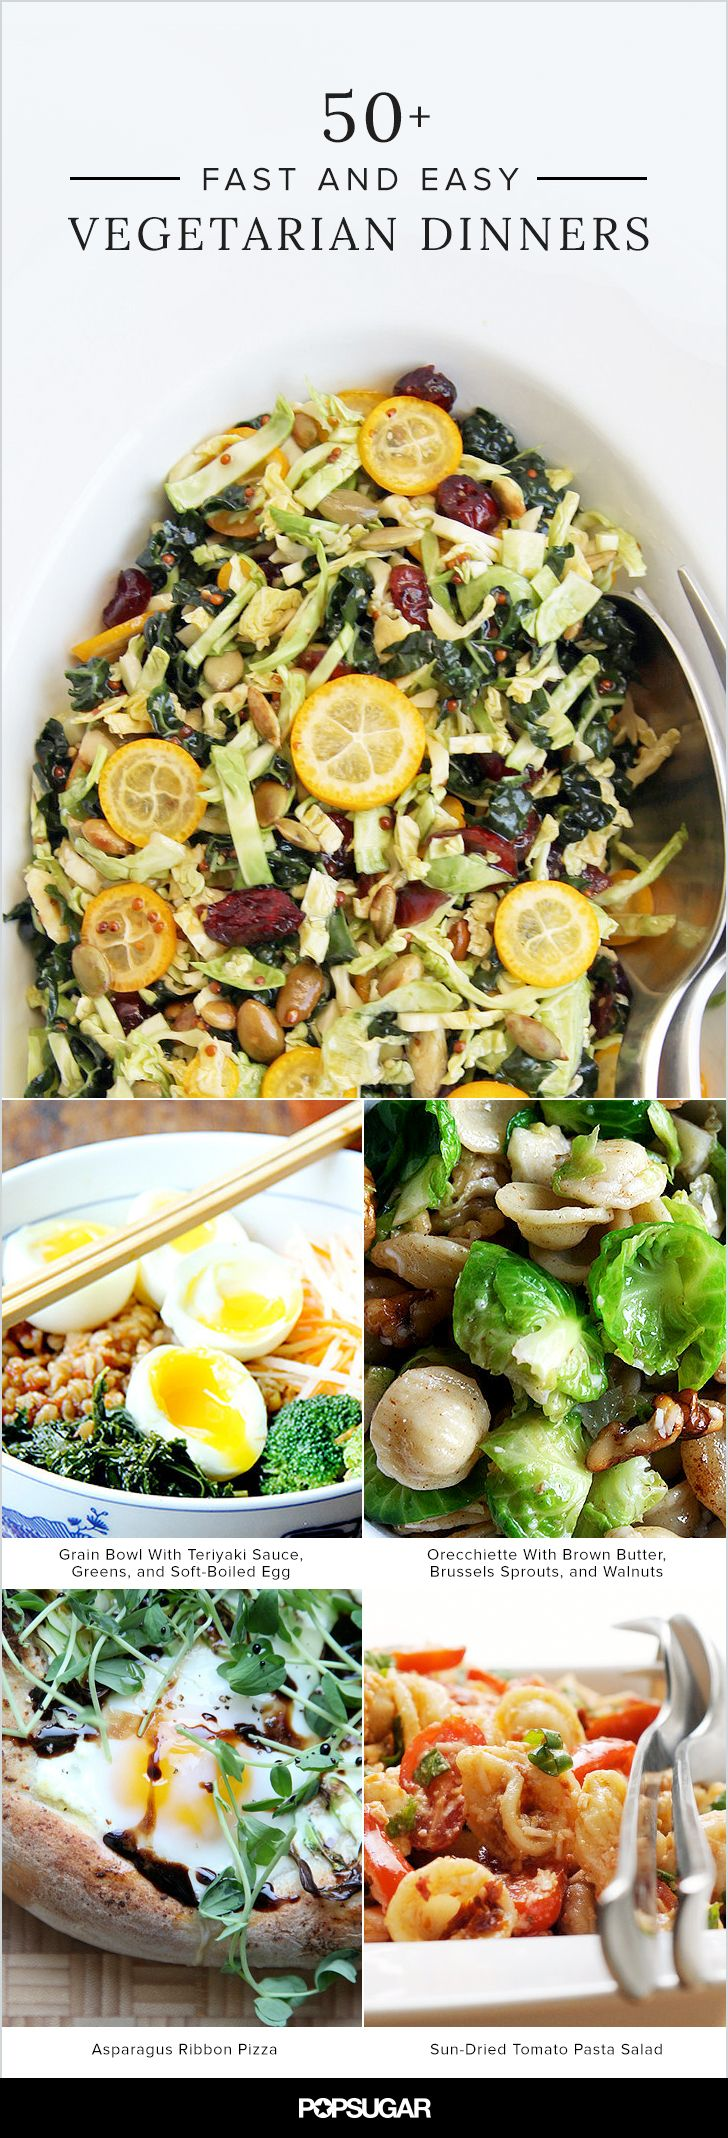 Two things that sometimes don't mix: weeknights and cooking. But with the right recipes, it's possible to have a satisfying and delicious vegetarian meal in no time. From pasta and stir-fry to salads and soup, these speedy dishes will actually have you looking forward to cooking dinner instead of dreading it.